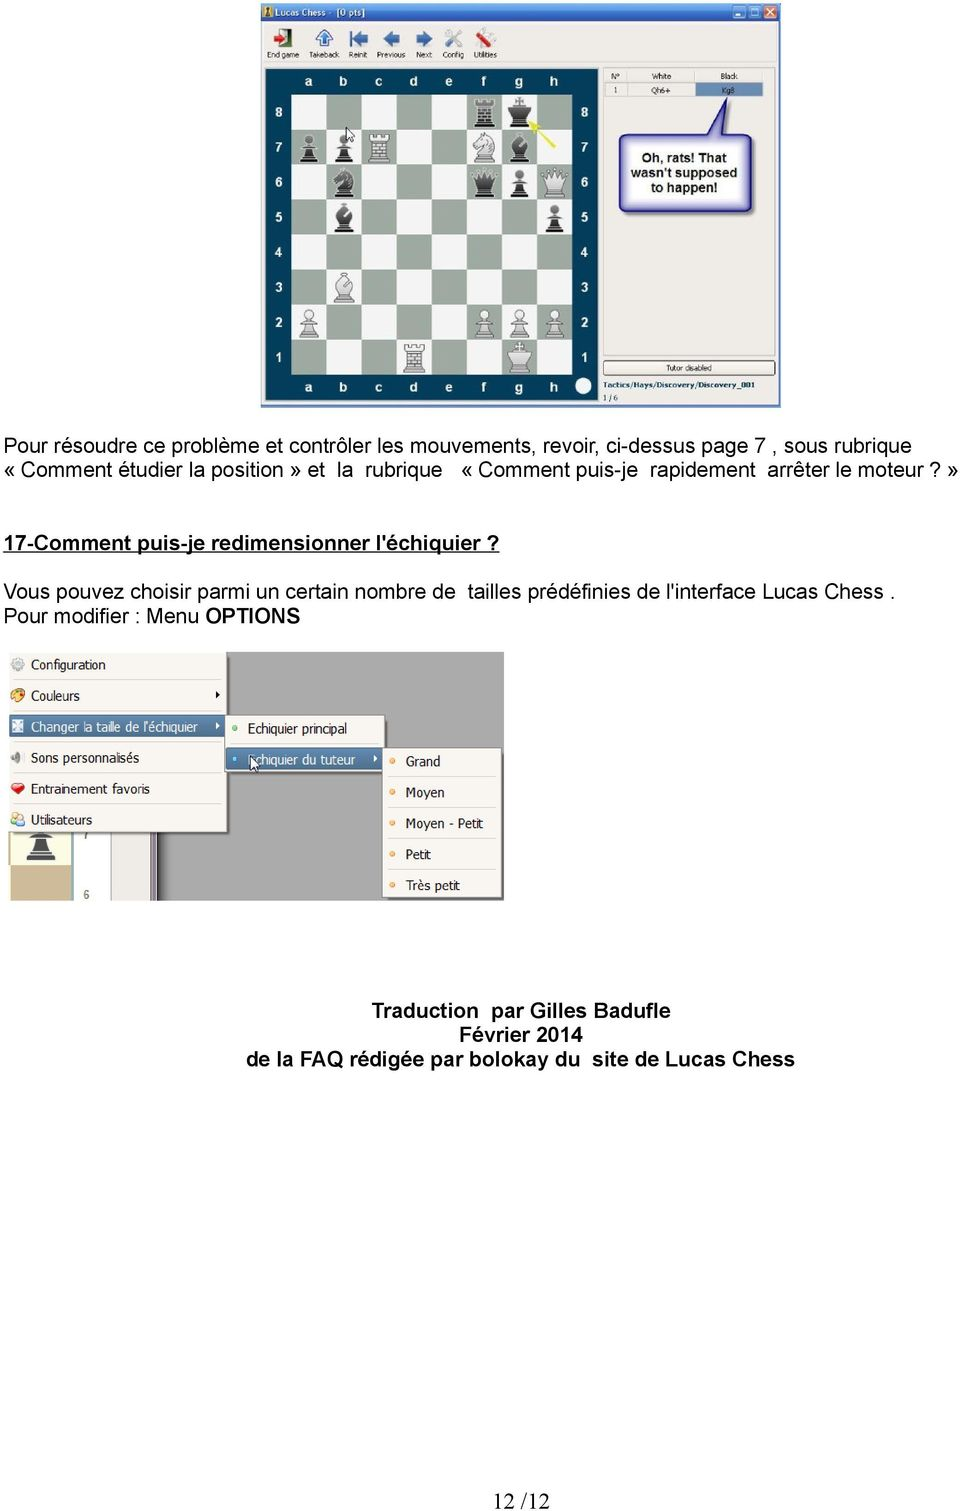 FAQ de LUCAS CHESS (traduction de la FAQ rédigée par bolokay - PDF